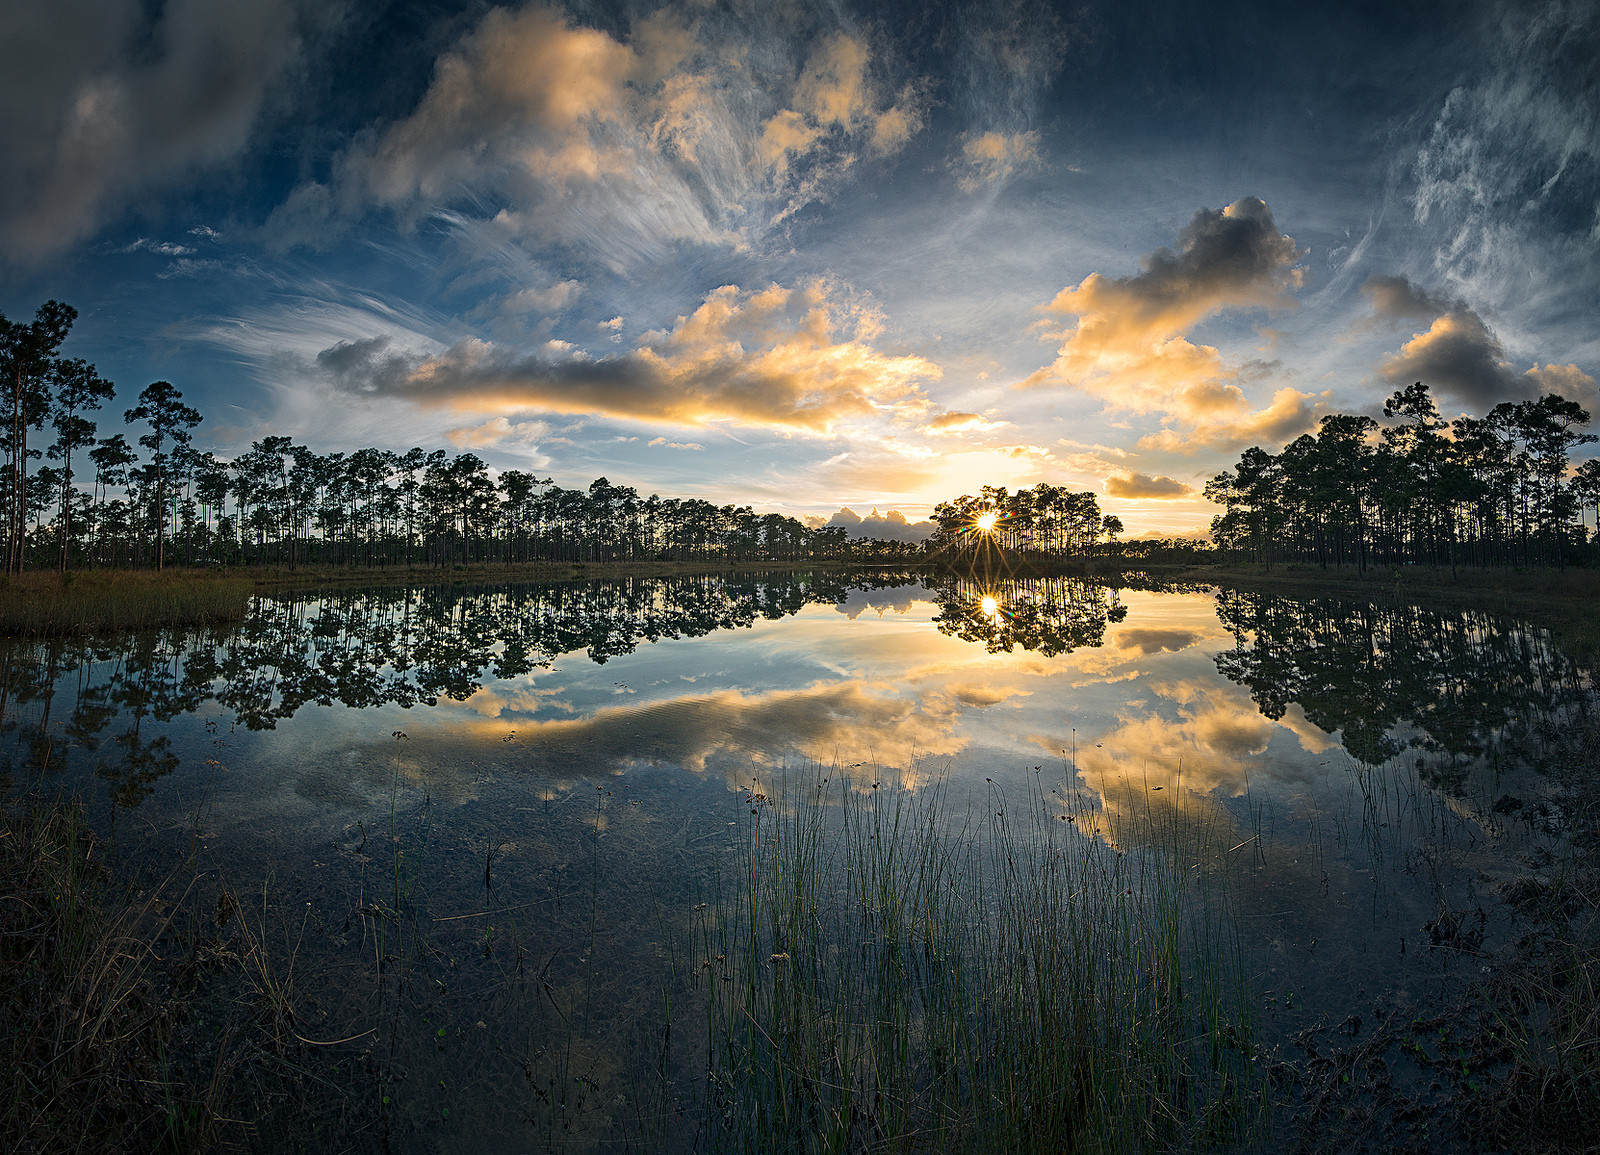 Amazing Sunset in the Florida Everglades